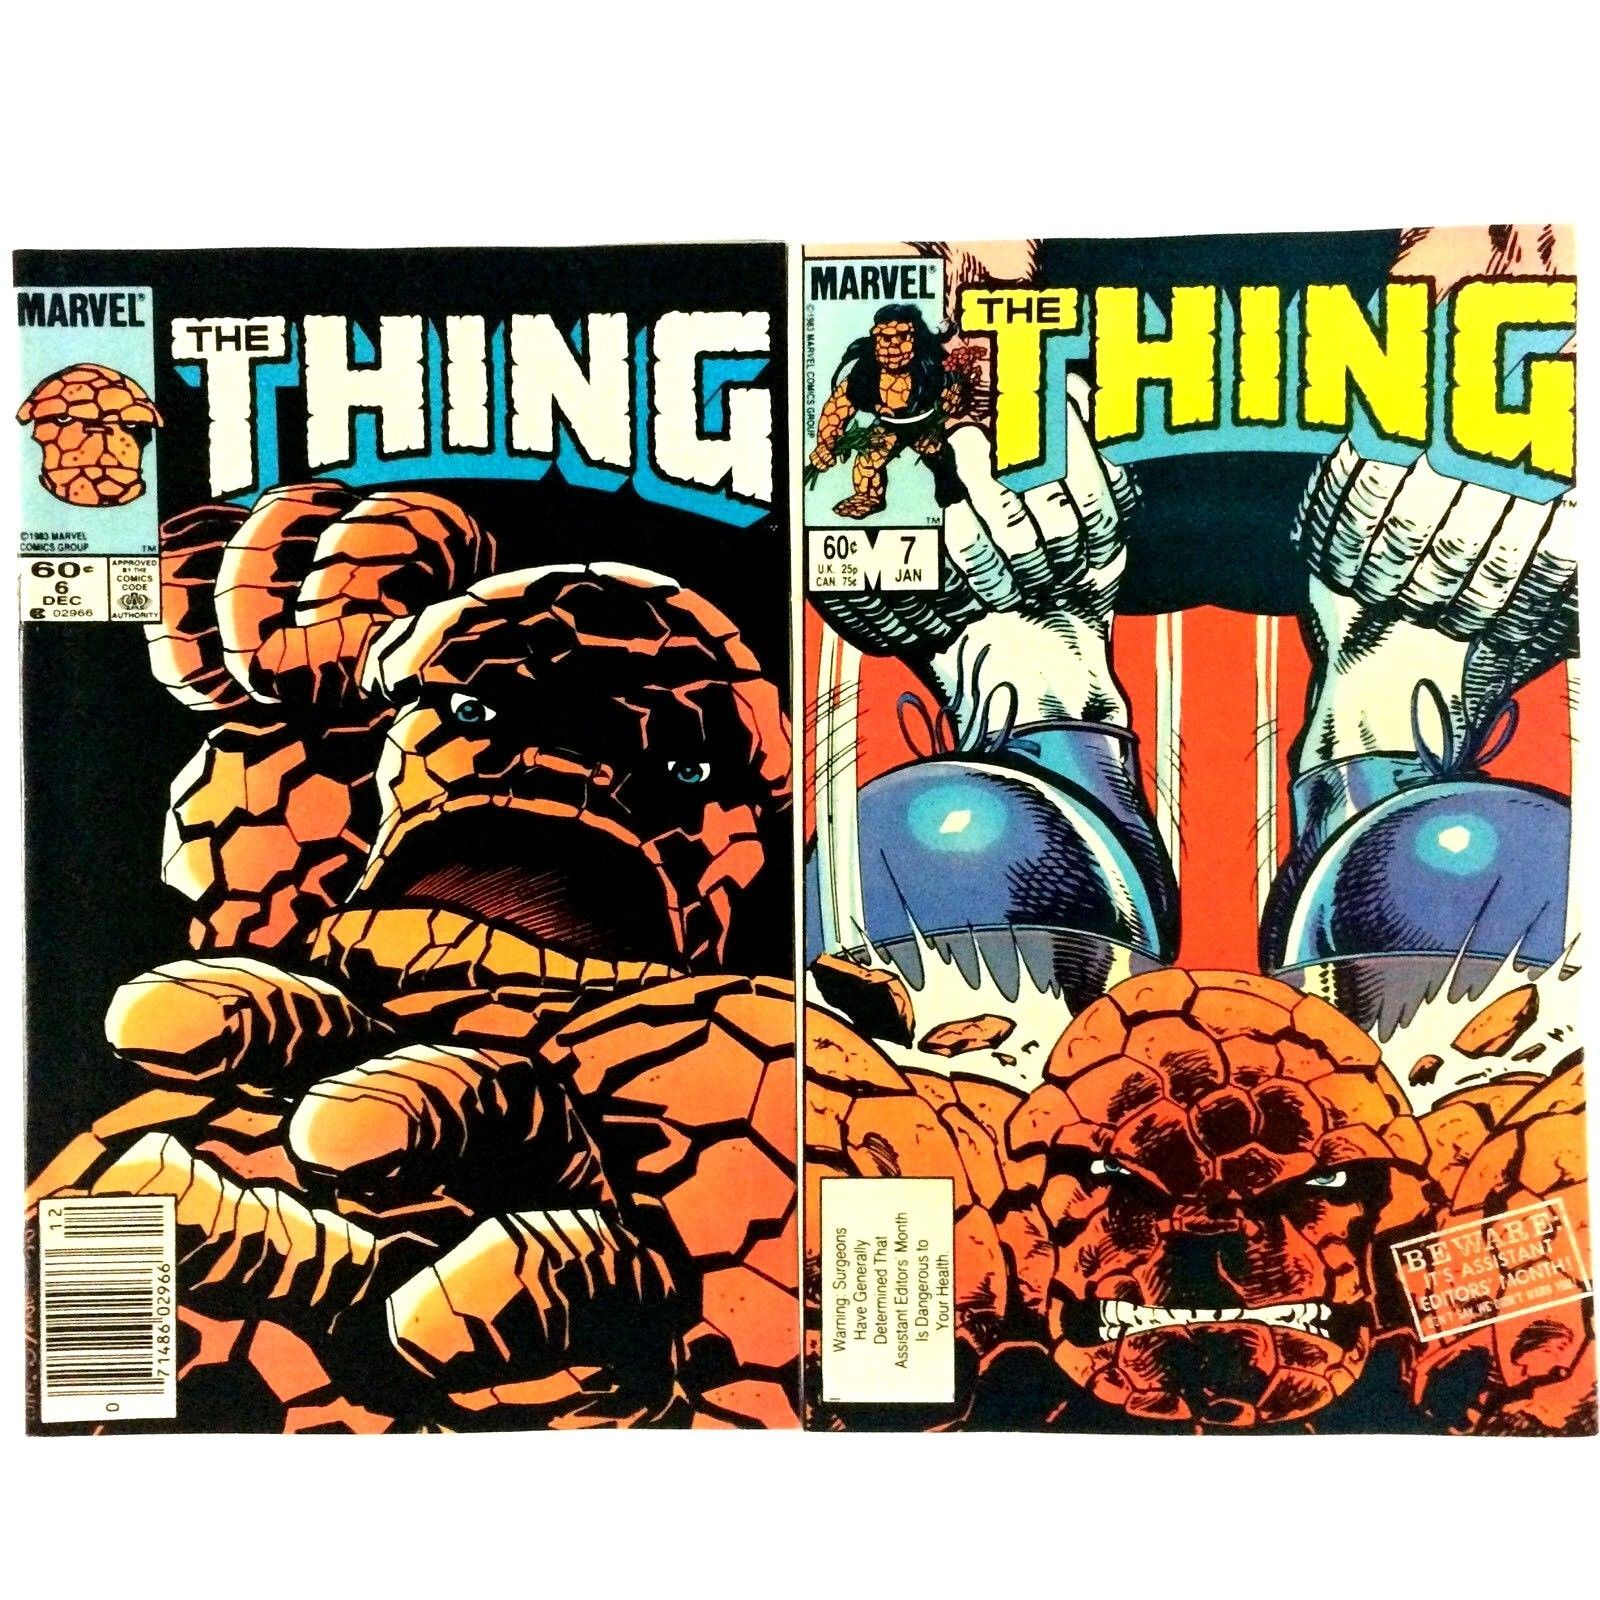 The Thing 13 Issue Comic Book Lot Marvel Copper Age Spider-Man She-Hulk Inhumans